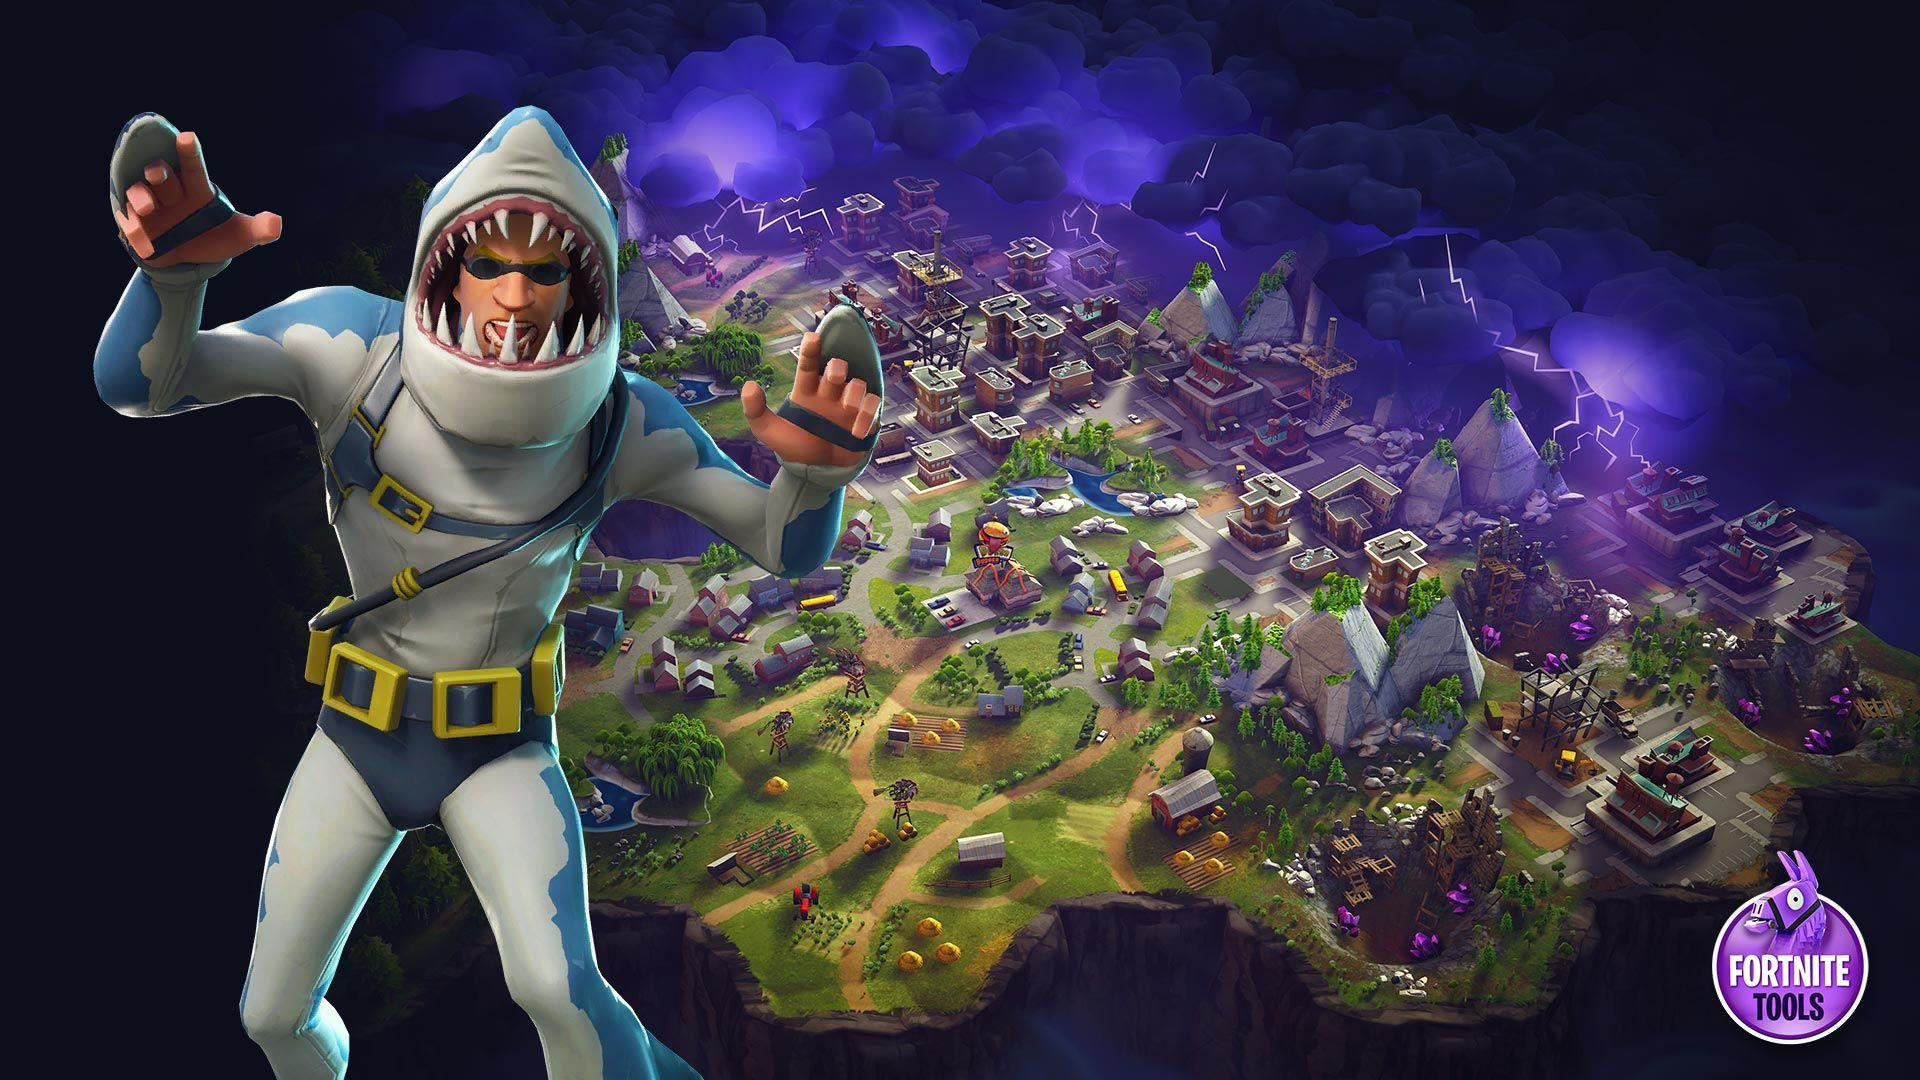 fortnite-battle-royale-wallpaper-skin-chomp-sr › Fortnite Tools